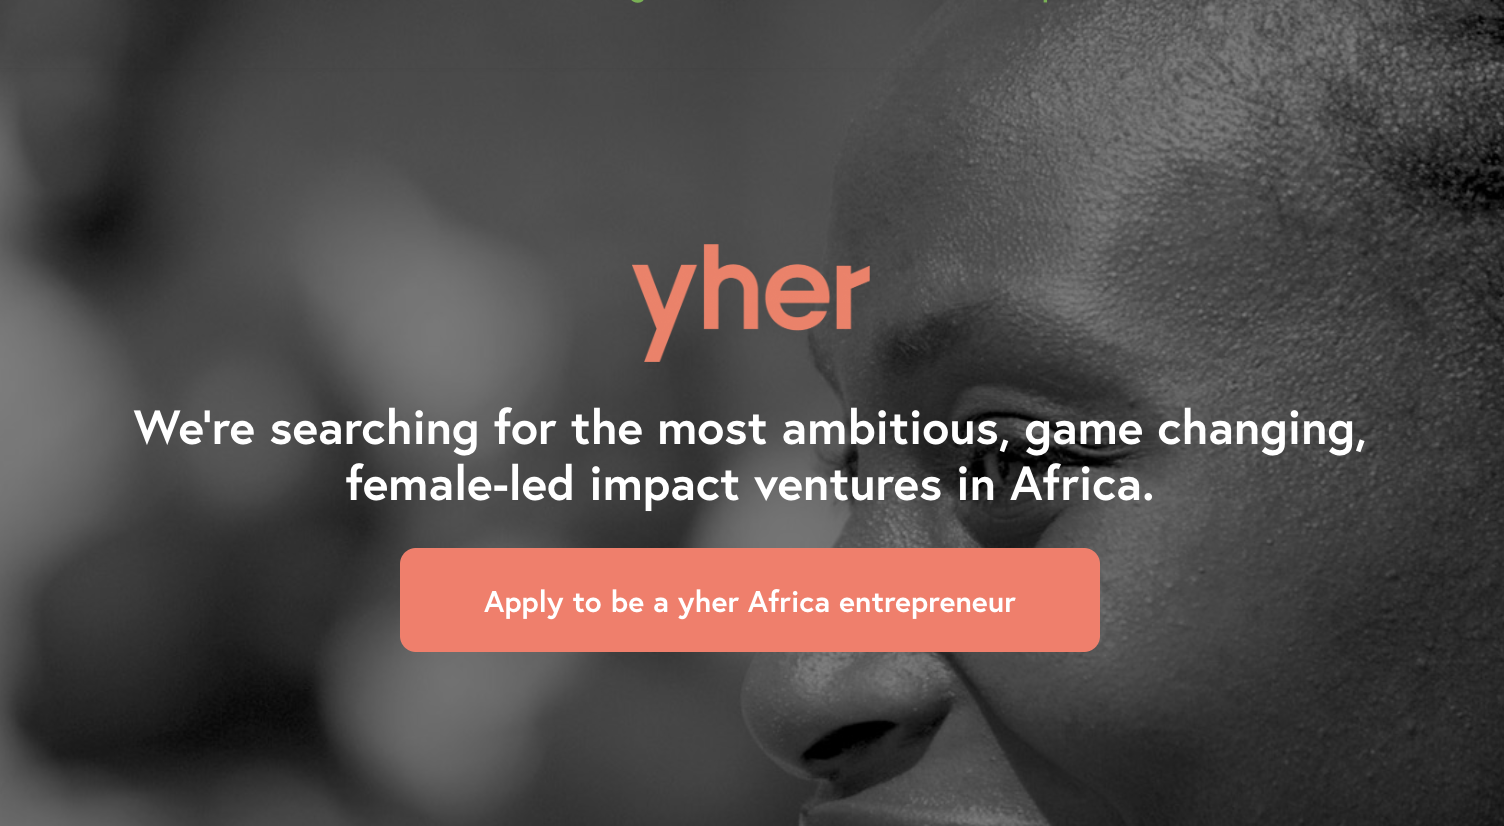 YGAP yher Africa Accelerator Program 2019 for Female Business Owners